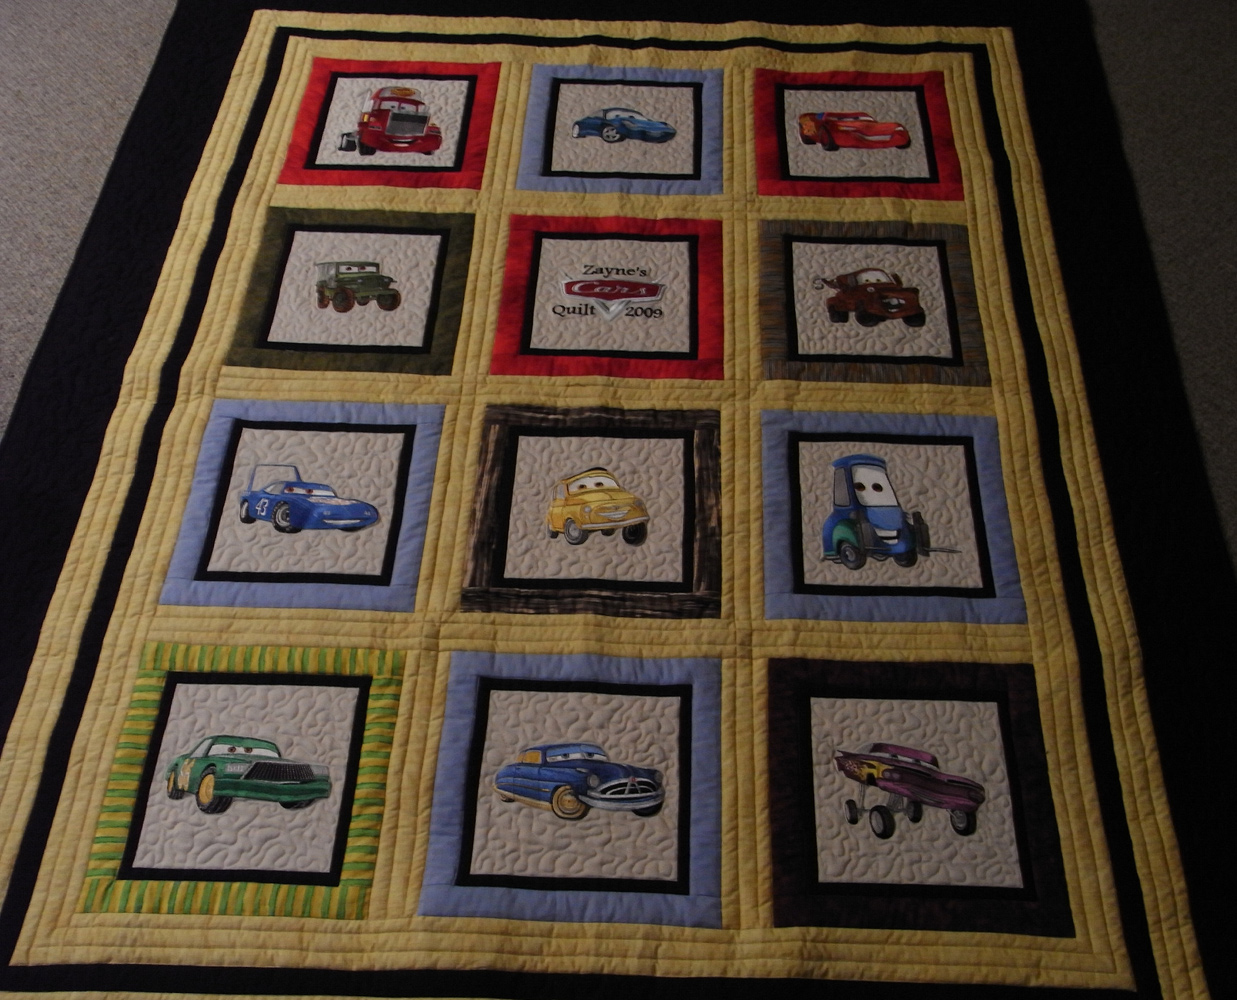 Quilt with Cars embroidery designs